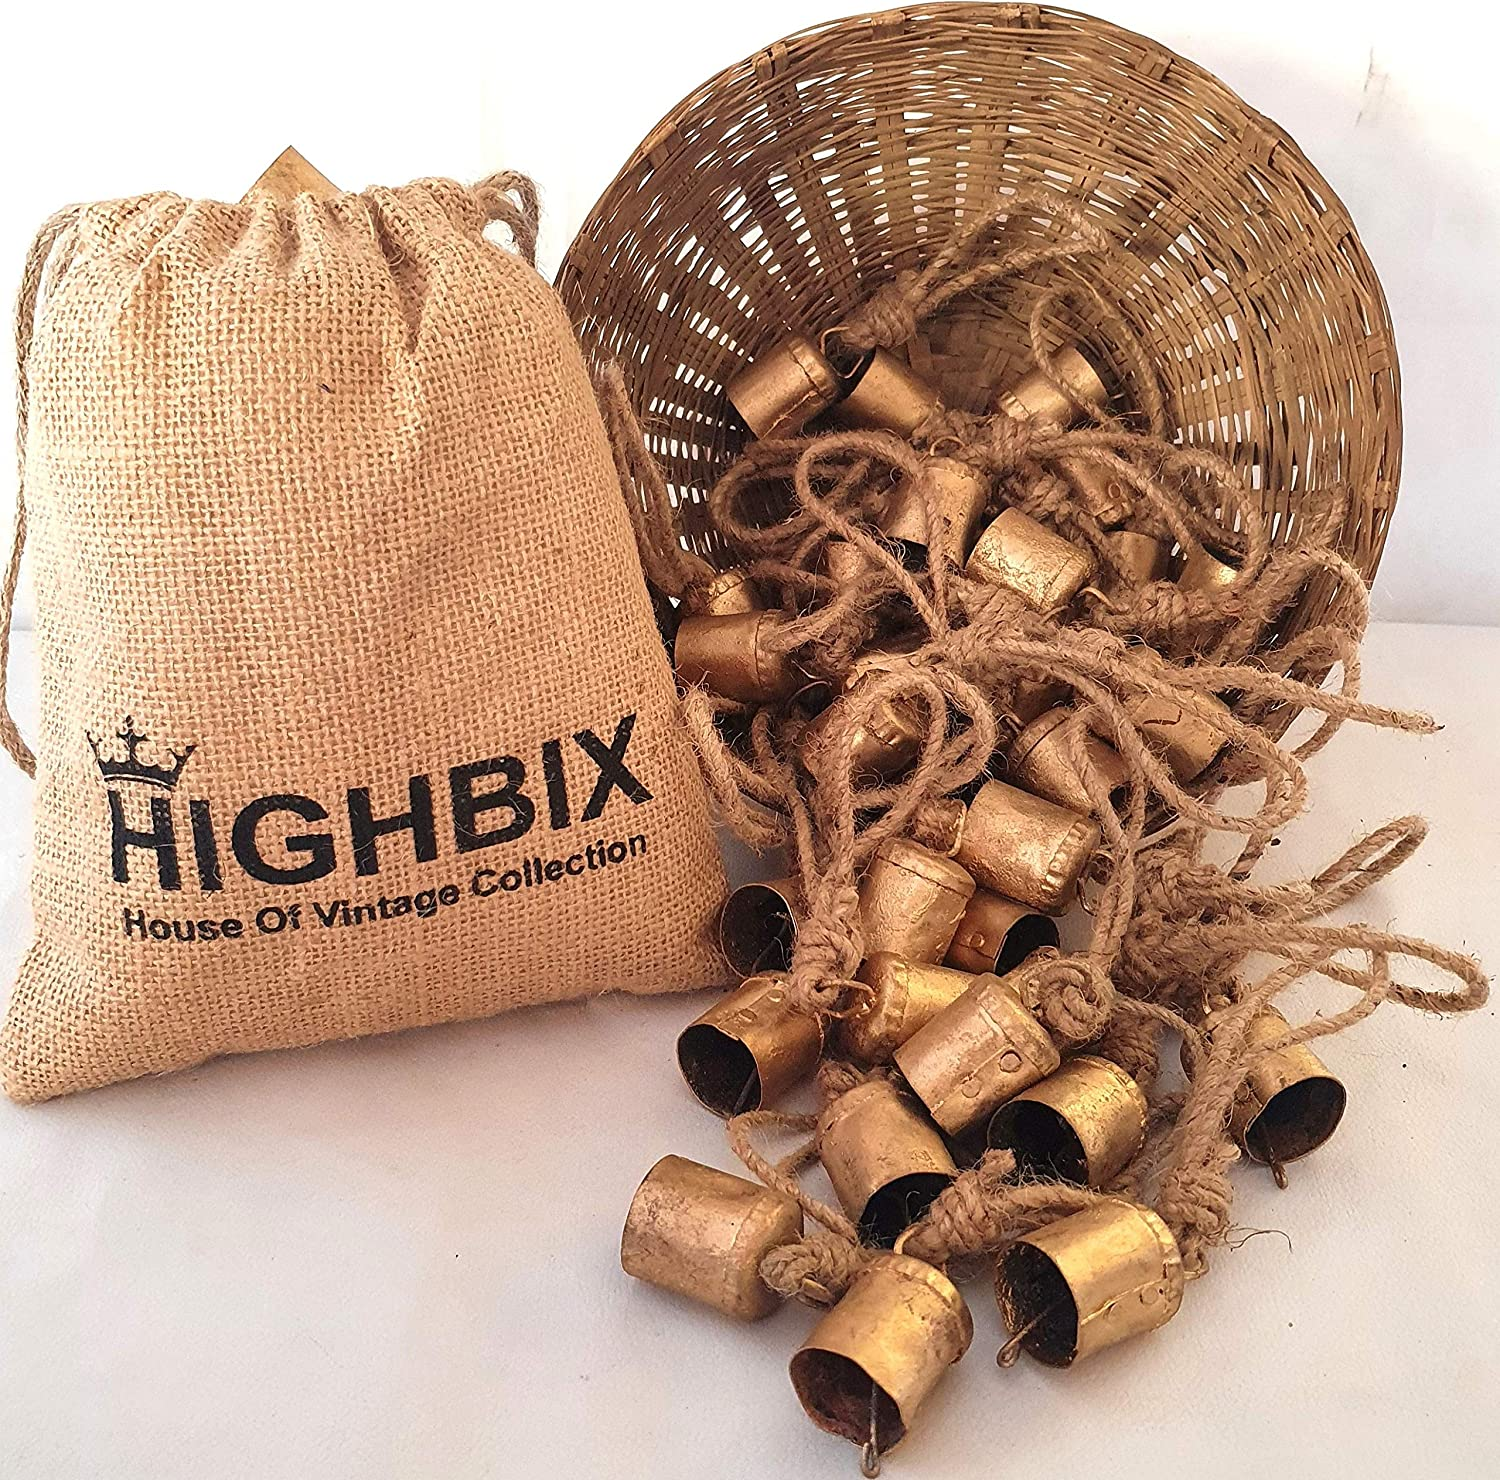 HIGHBIX 4cm Vintage Rustic Lucky Cylinder Shaped Tin Cow Bells with Jute Rope Set of 30 Handmade Christmas Décor Bells on Rope with Jute Bag